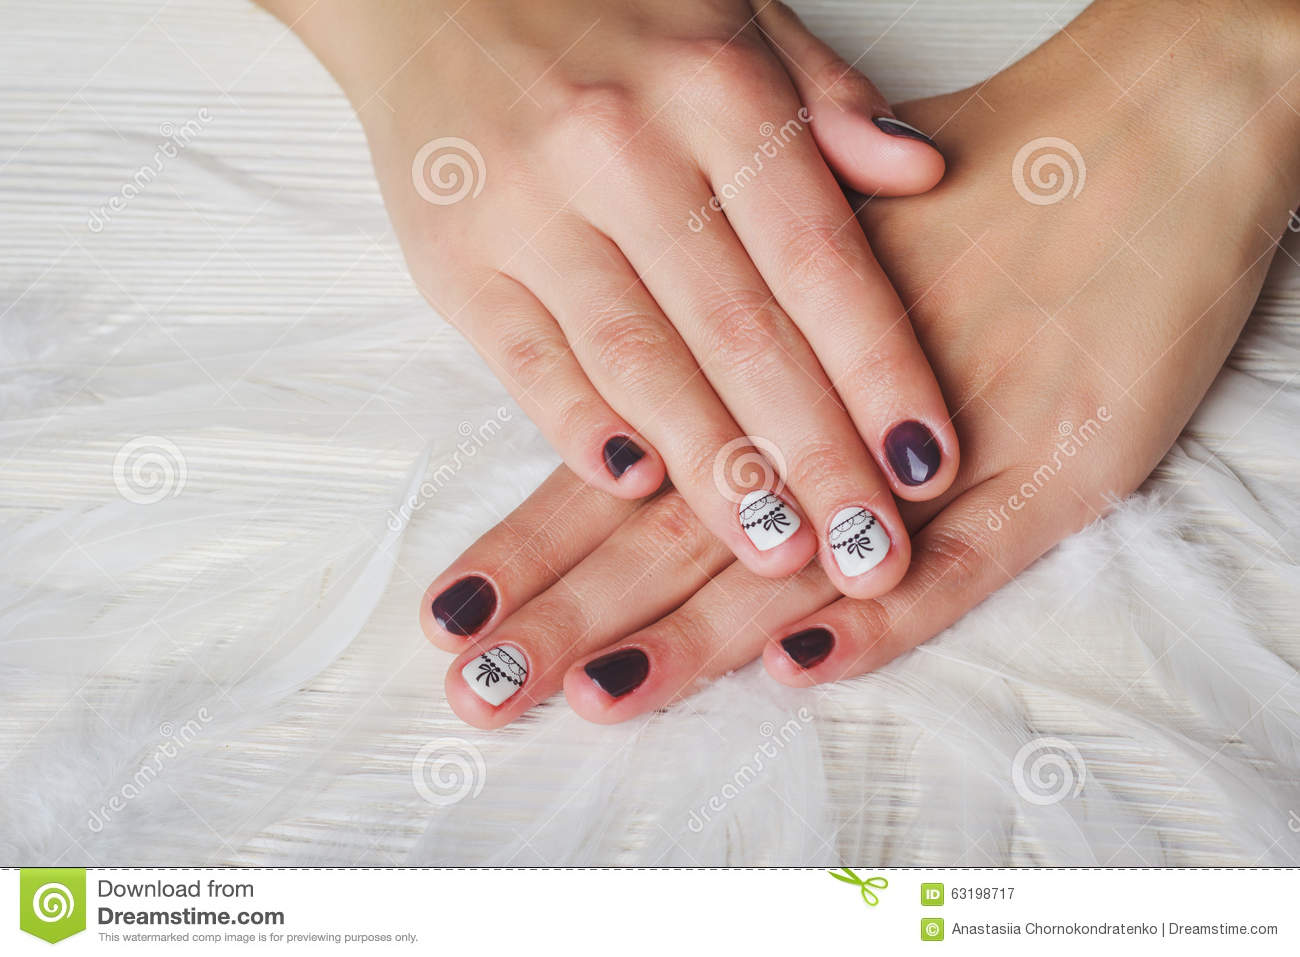 Violet Nail Art With Printed White Bow Stock Image Image Of Care